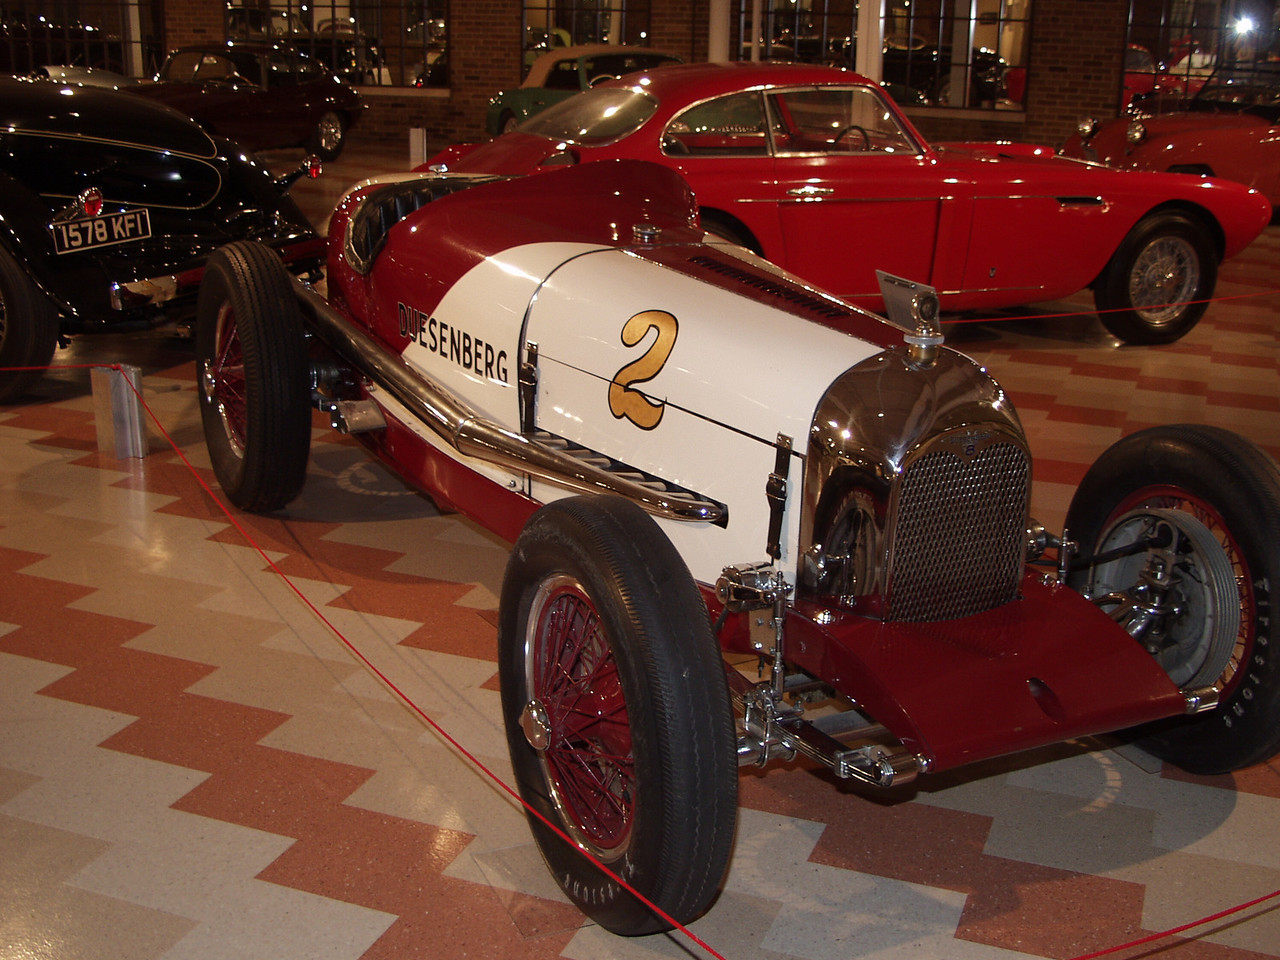 In its day the Duesenberg was an awesome force in the world of racing. In 1921 Duesenberg won the French Gran Prix at Le Mans as the first American entrant to win that prestigious race. From 1913 to 1937  Duesenbergs were raced in the Indianapolis 500.  In the 1922 race, eight of the first ten finishers were Duesenbergs, including the winner. This Duesenberg Indianapolis race car was first driven at the Indianapolis 500 in 1927 and was raced in various forms until 1937. In 1929 the car was part of the Duesenberg factory team and placed third with Jimmy Gleason behind the wheel. If not for some bad pit work at lap 195 it could have won the race. This car was the last Duesenberg to race in the Indianapolis 500 finishing 11th in 1937.<br /> This 1927 Duesenberg race car is powered by a 91.5 cubic inch straight-eight engine with dual overhead cams. In 1927, the fifteen millionth Ford Model T rolled off the assembly line. Babe Ruth hit a record 60 home runs during a 154 game season. Charles Lindbergh became the first man to fly solo across the Atlantic Ocean. <br /> Exhibited through the courtesy of Vintage Racing Motors.